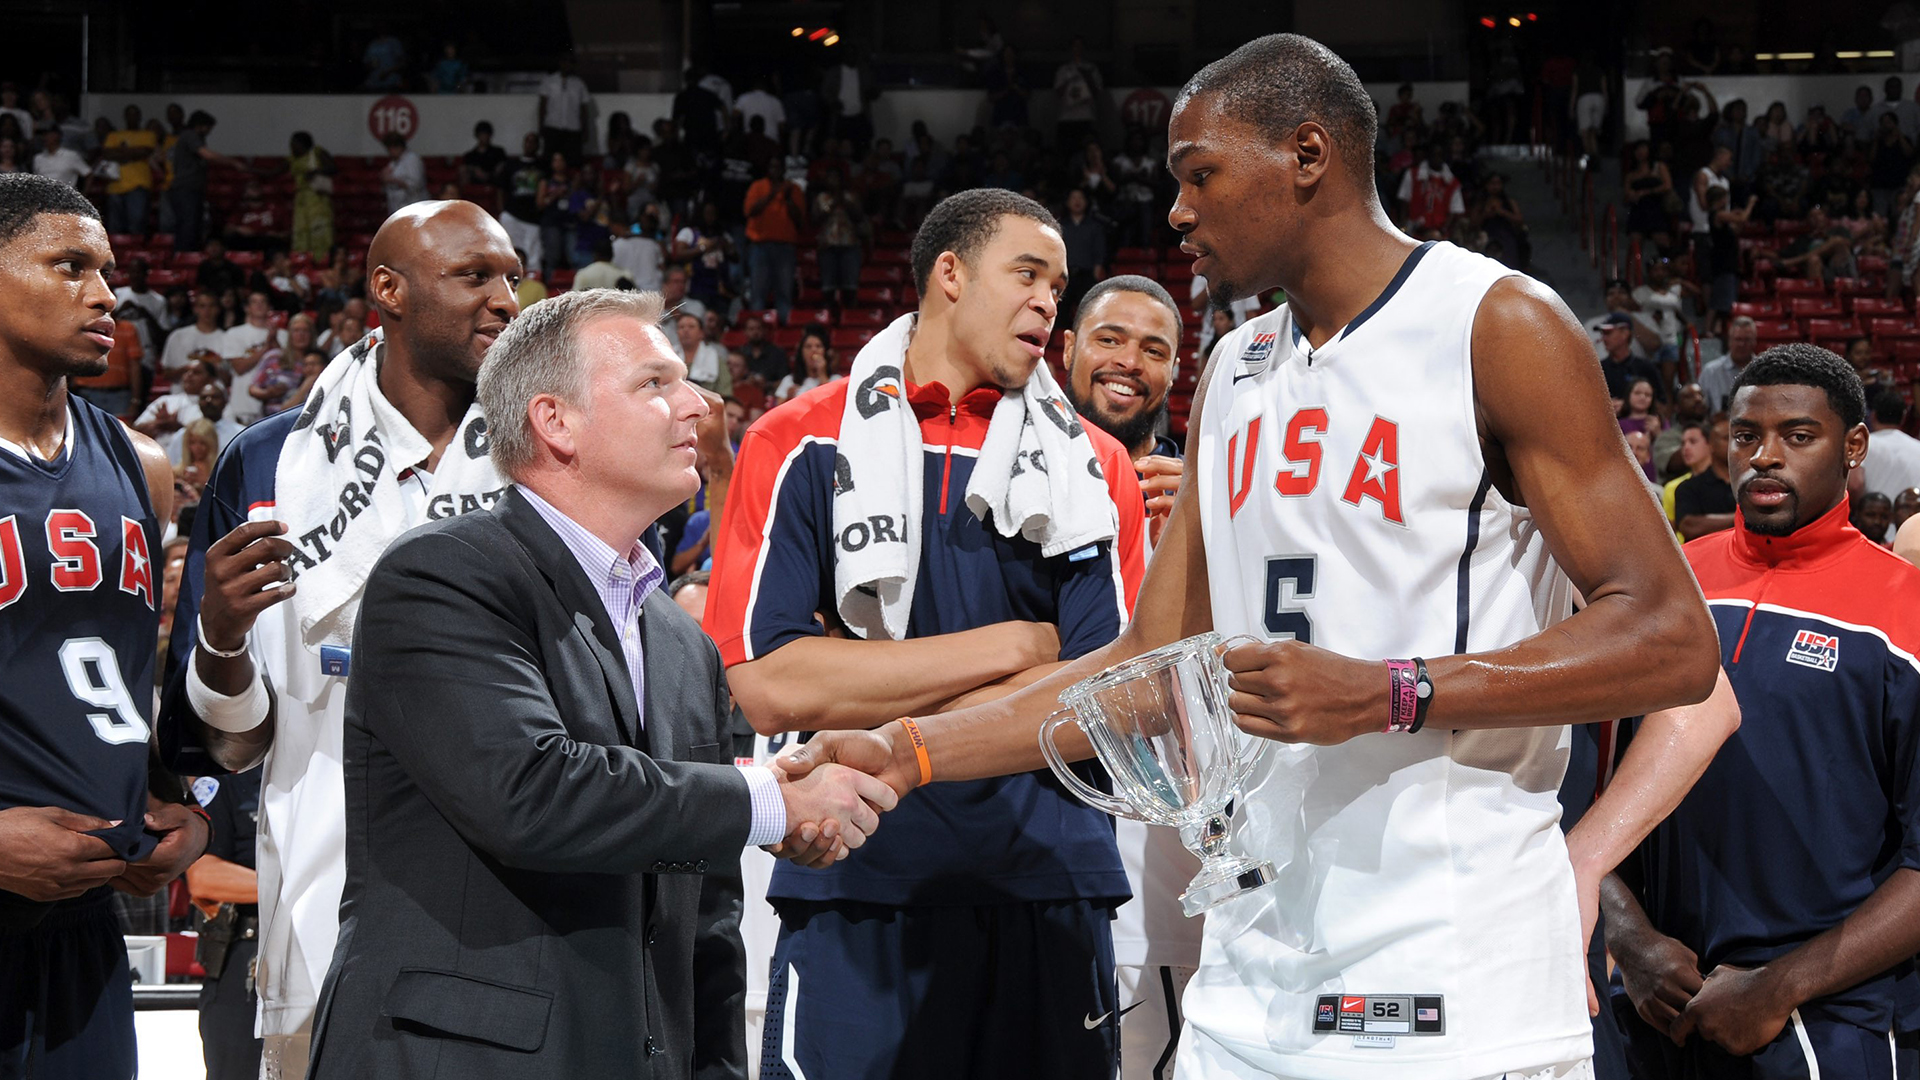 Kevin Durant receiving the 2010 USA MNT Showcase MVP award in Las Vegas